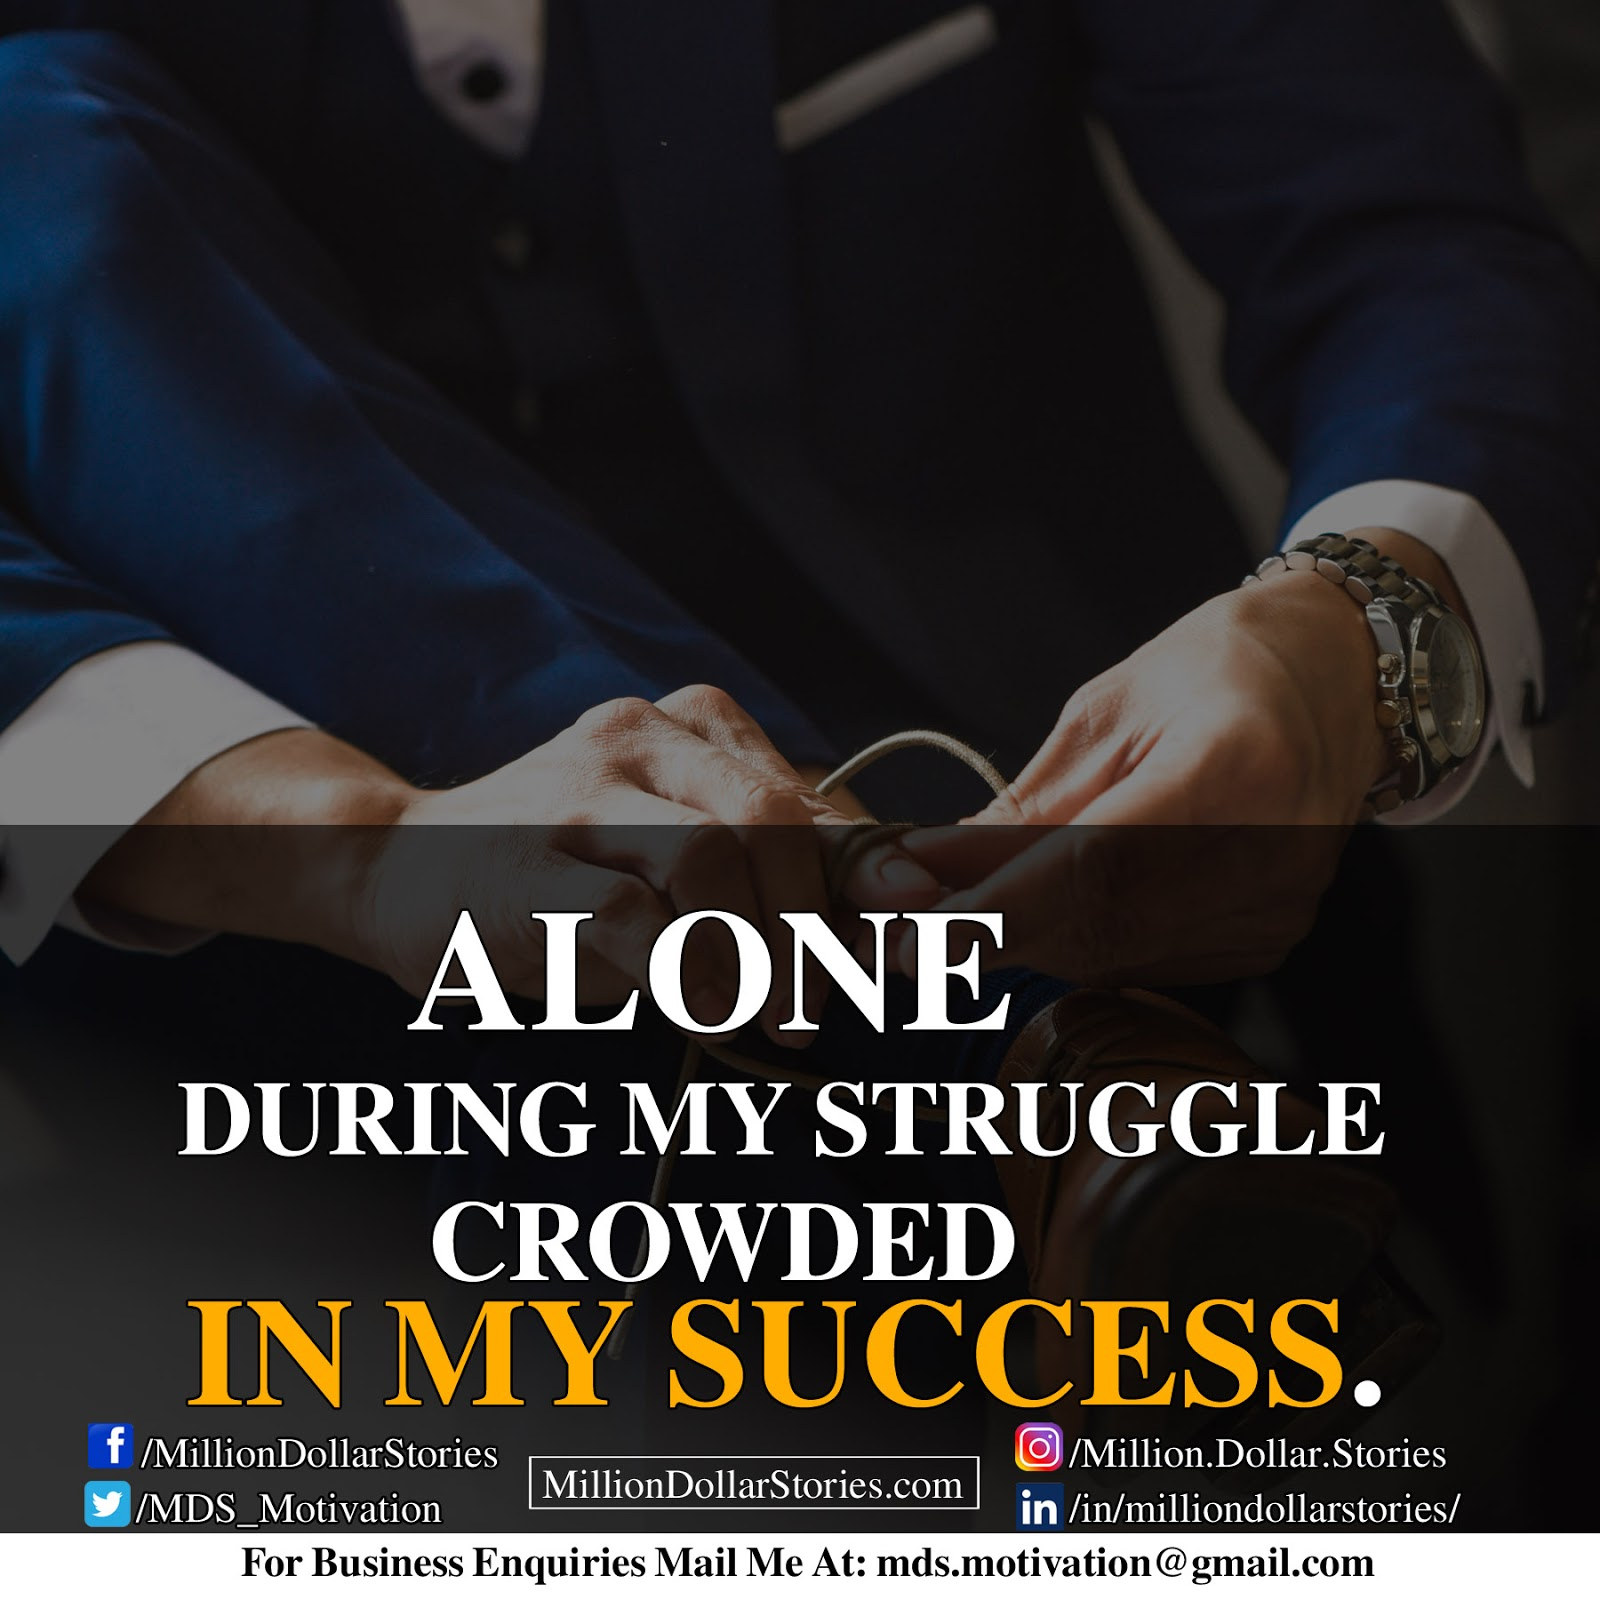 ALONE DURING MY STRUGGLE CROWDED IN MY SUCCESS.